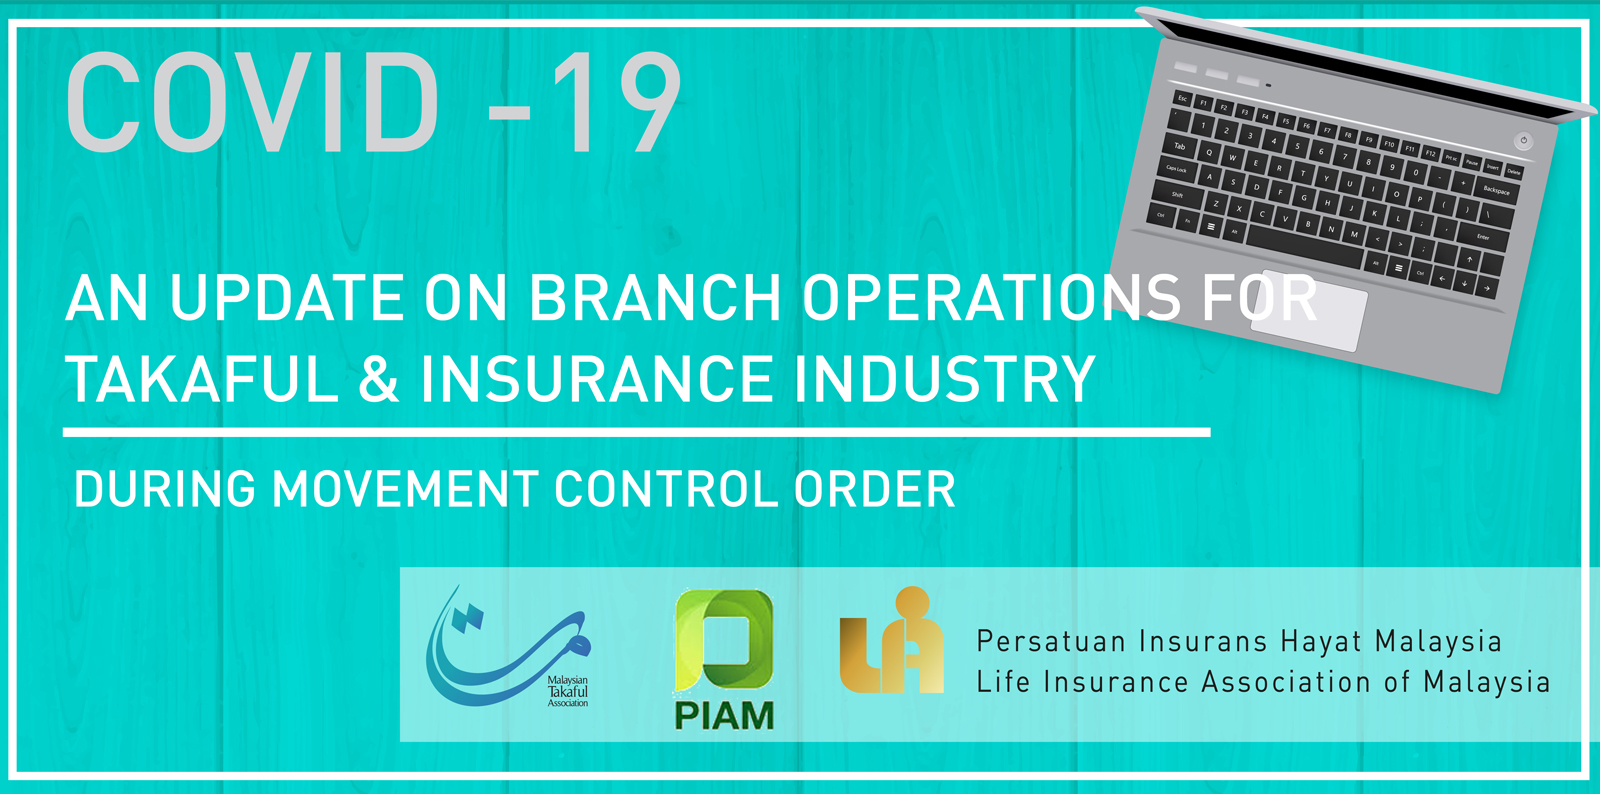 An Update For Branch Operations For Takaful & Insurance Industry During MCO